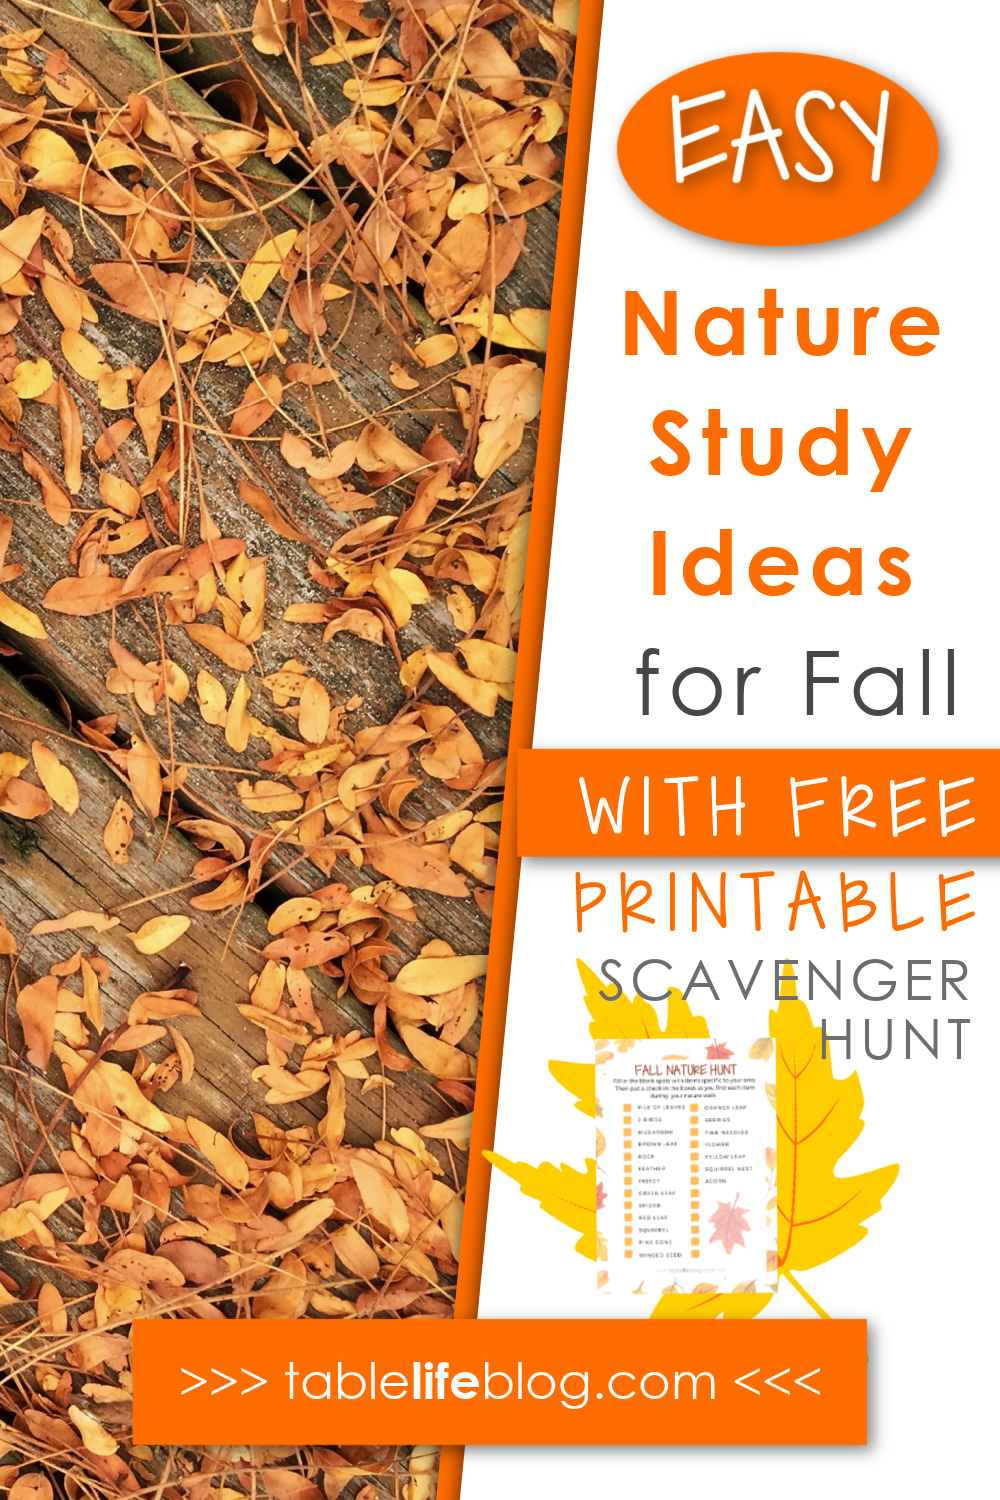 Goodbye summer and hello fall! Here are our favorite fall nature study ideas plus a FREE nature scavenger hunt printable!